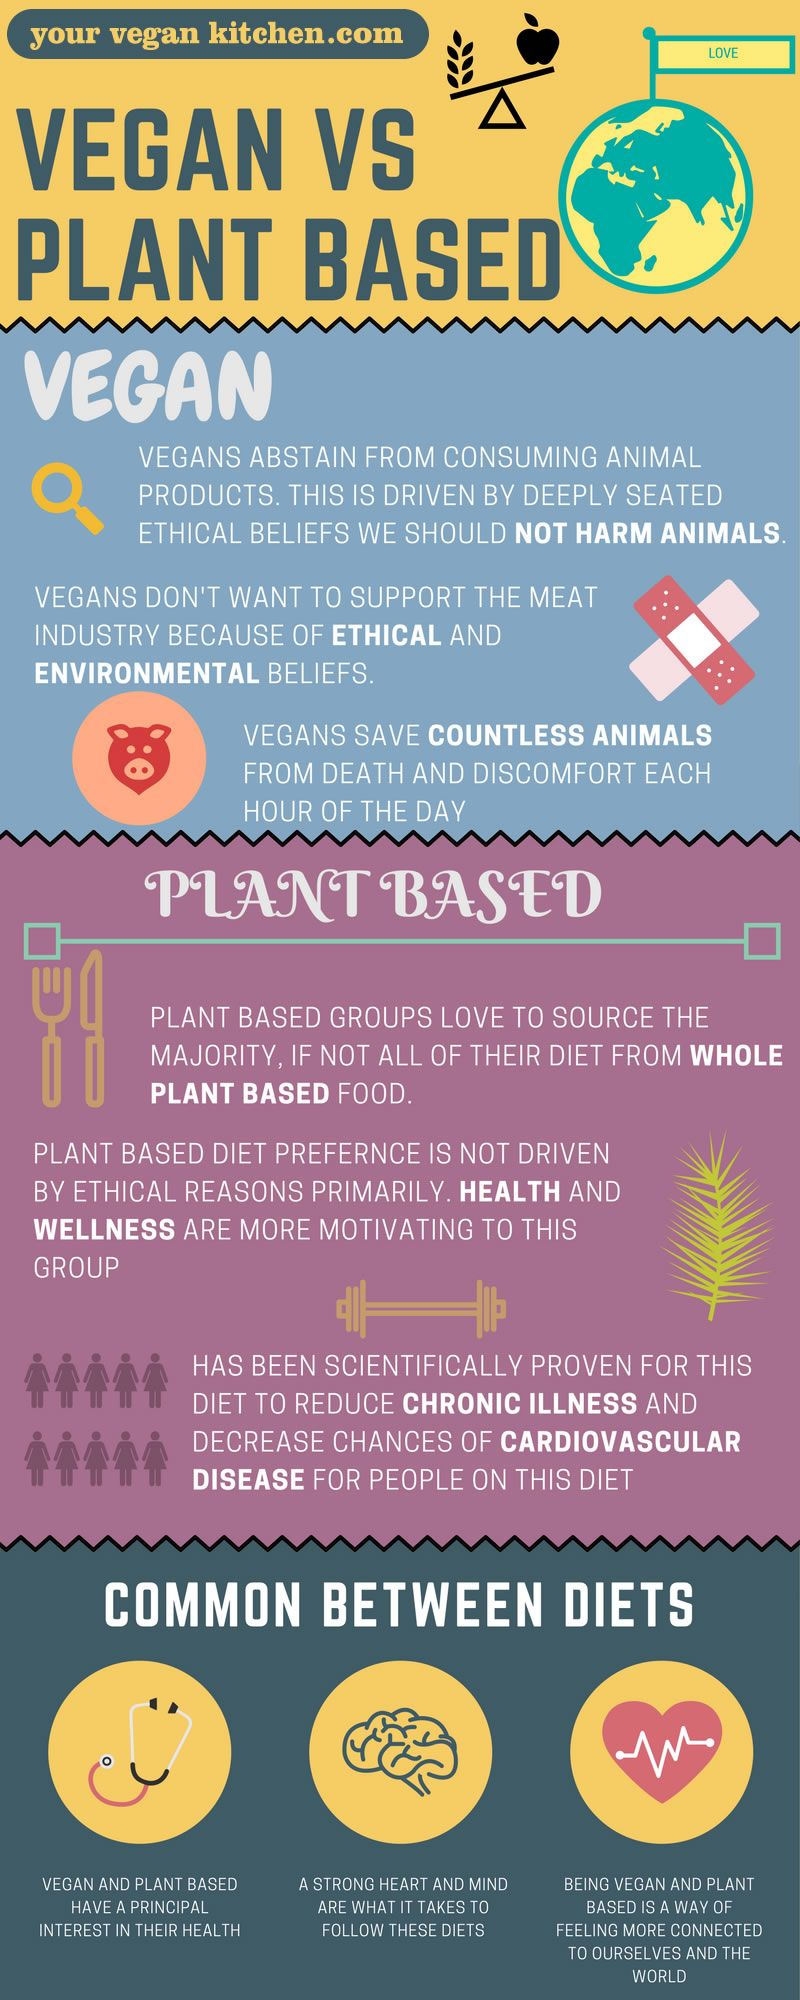 plant based diet vs vegan